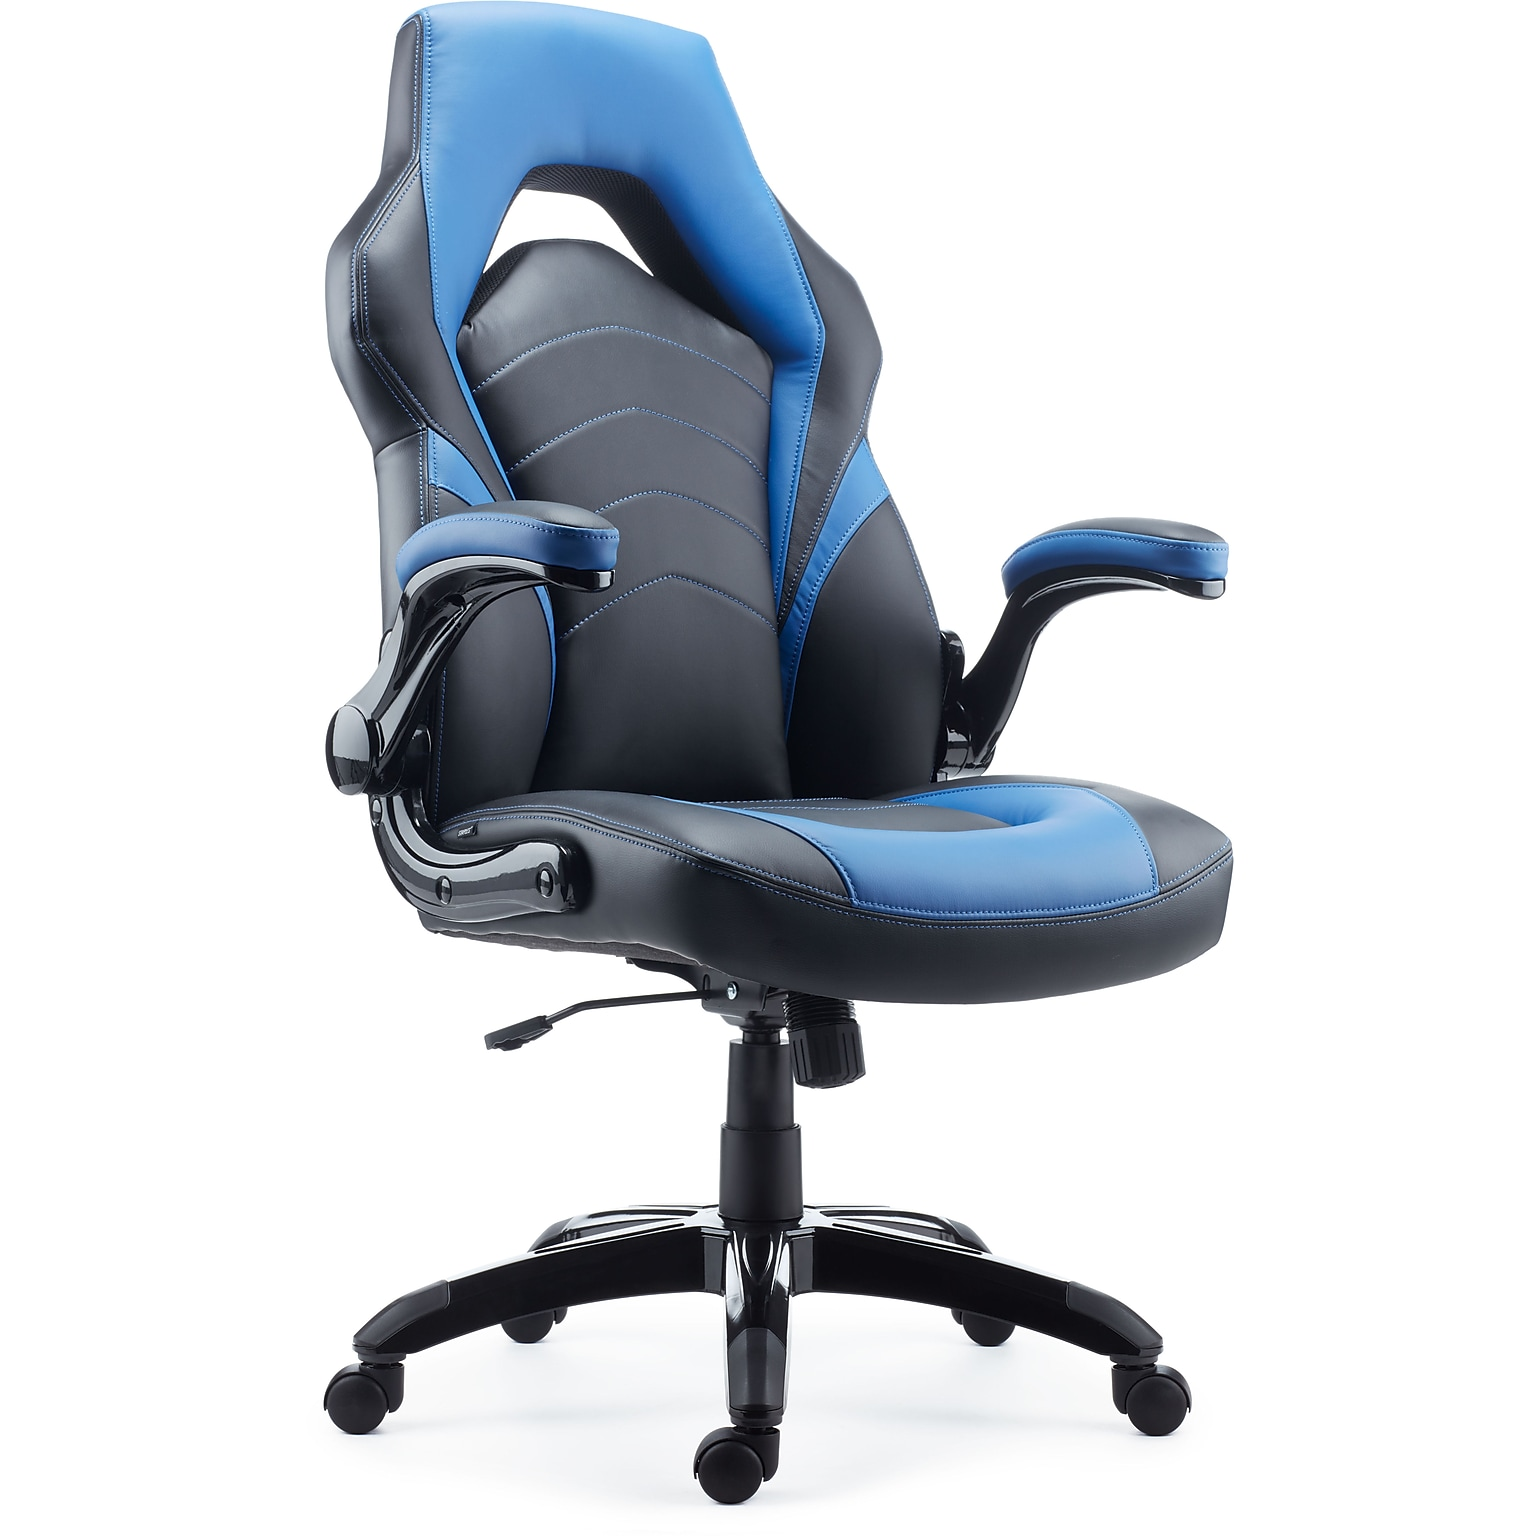 Staples 51464-CC Gaming Chair